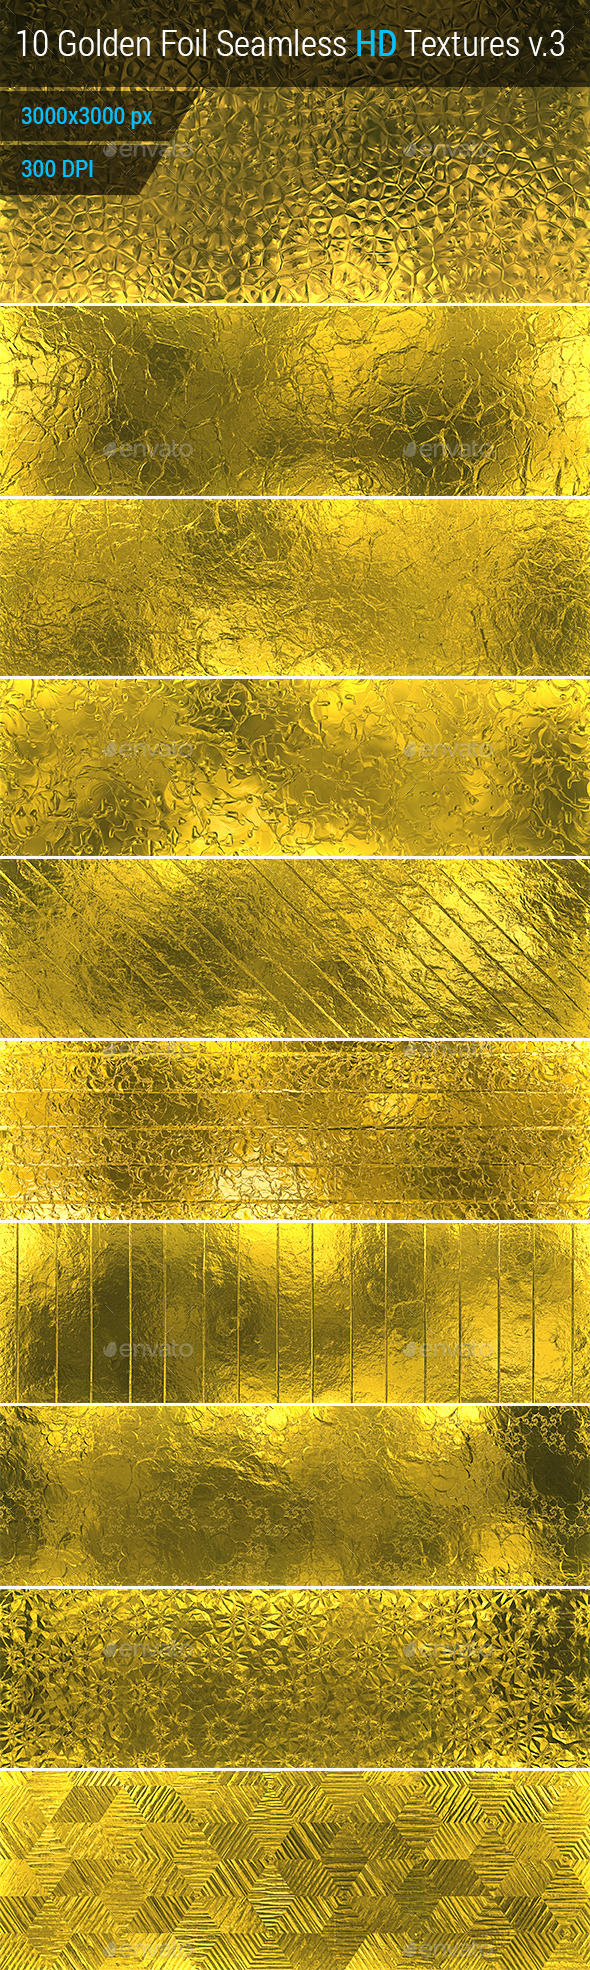 Golden Foil Seamless HD Textures Set v.3 - Metal Textures